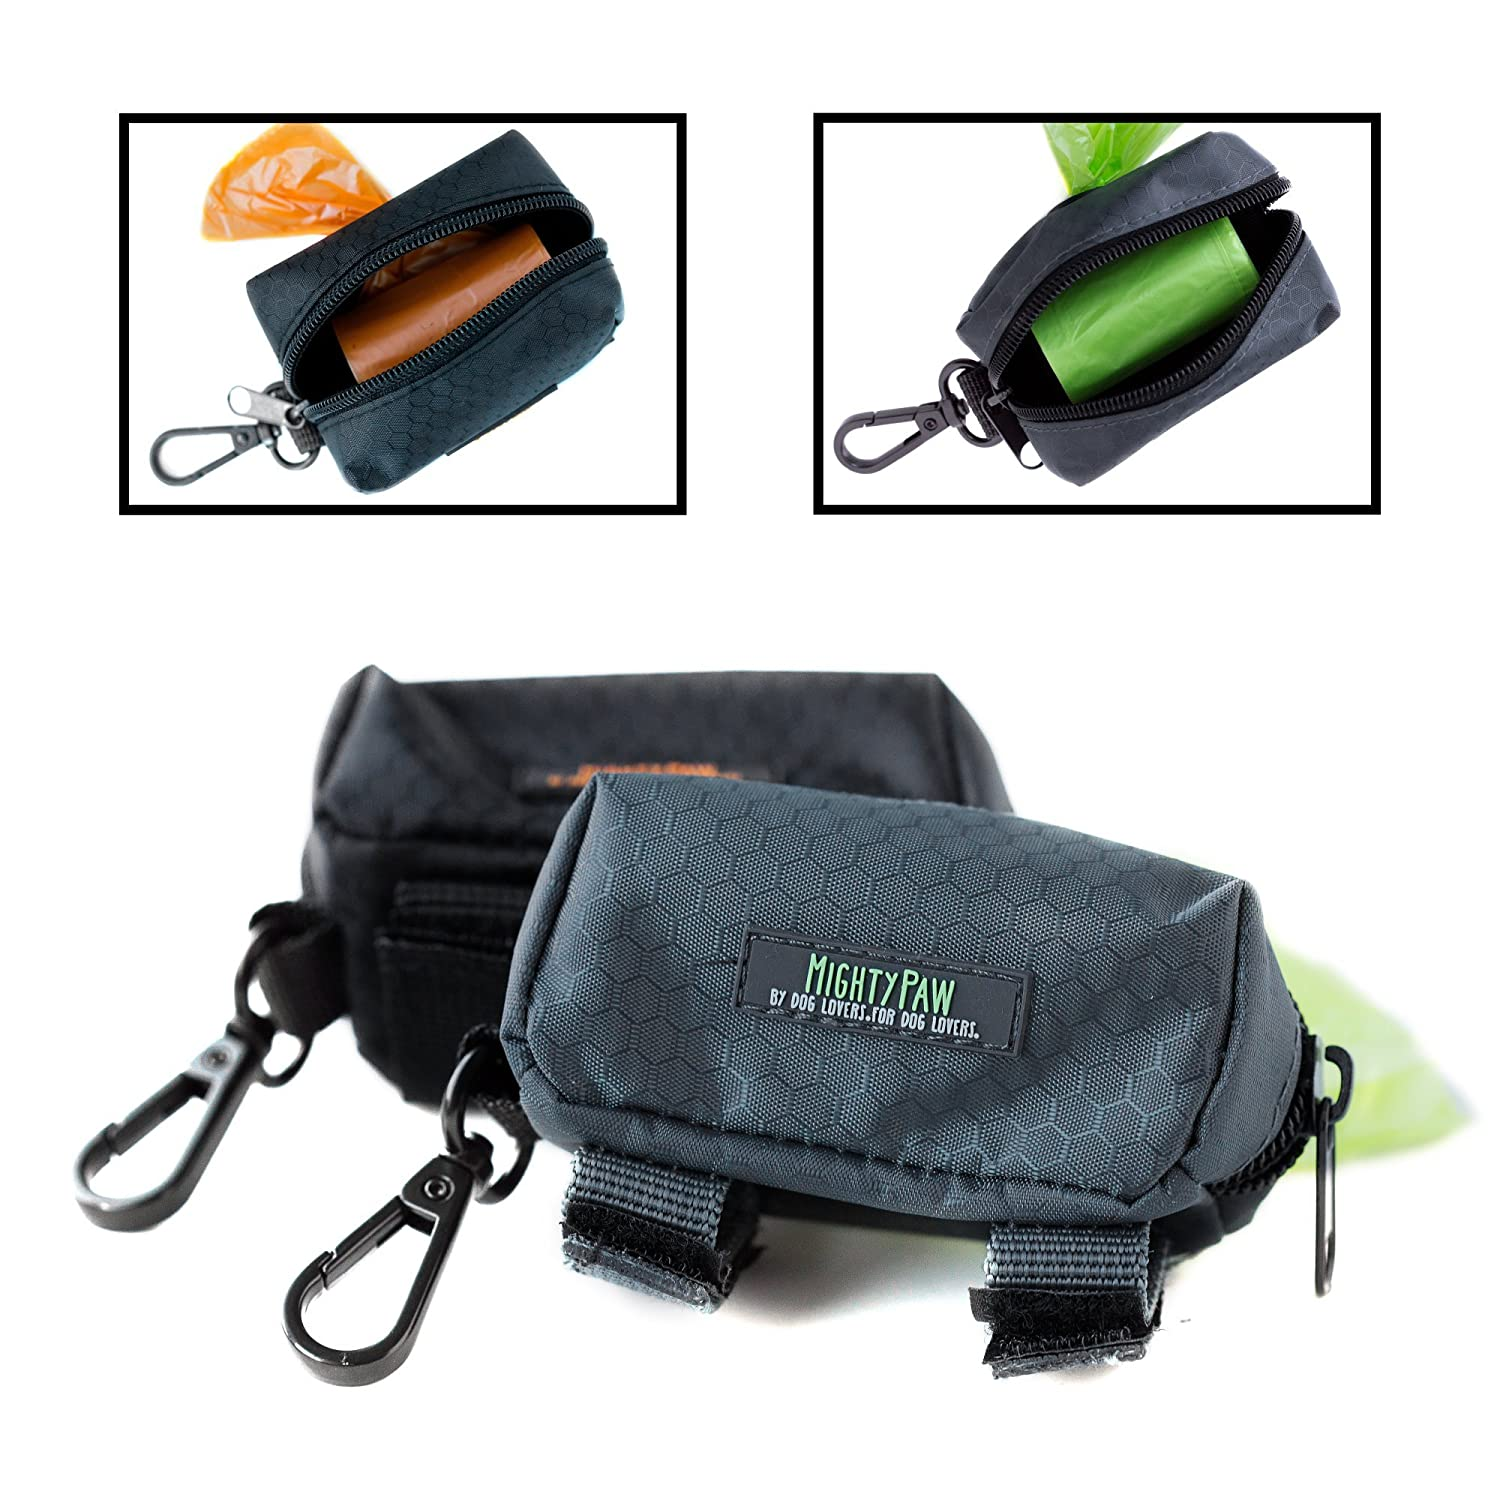 (Grey Green) Mighty Paw Dog Poop Bag Holder, Premium Quality Pick-up Bag Zippered Pouch, Includes Carabiner Hook and 1 Roll of Pick-up Bags